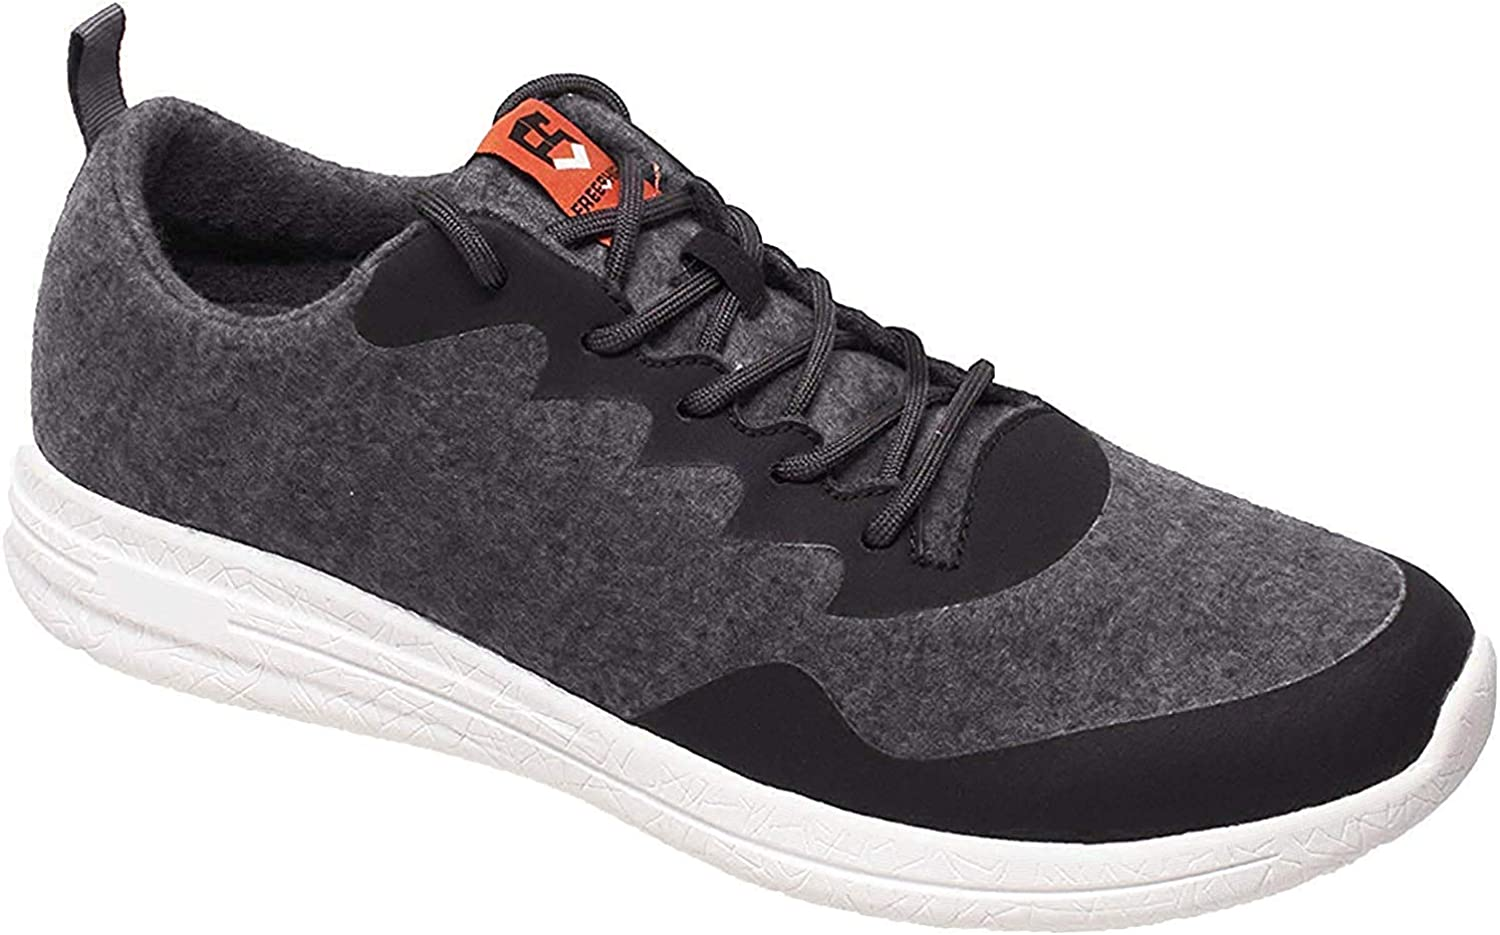 Modern Men s Wool Shoes, Lightweight Sneakers, Odor Resistant Temperature Regulating, Easy to Slip On Clean, All Season Footwear